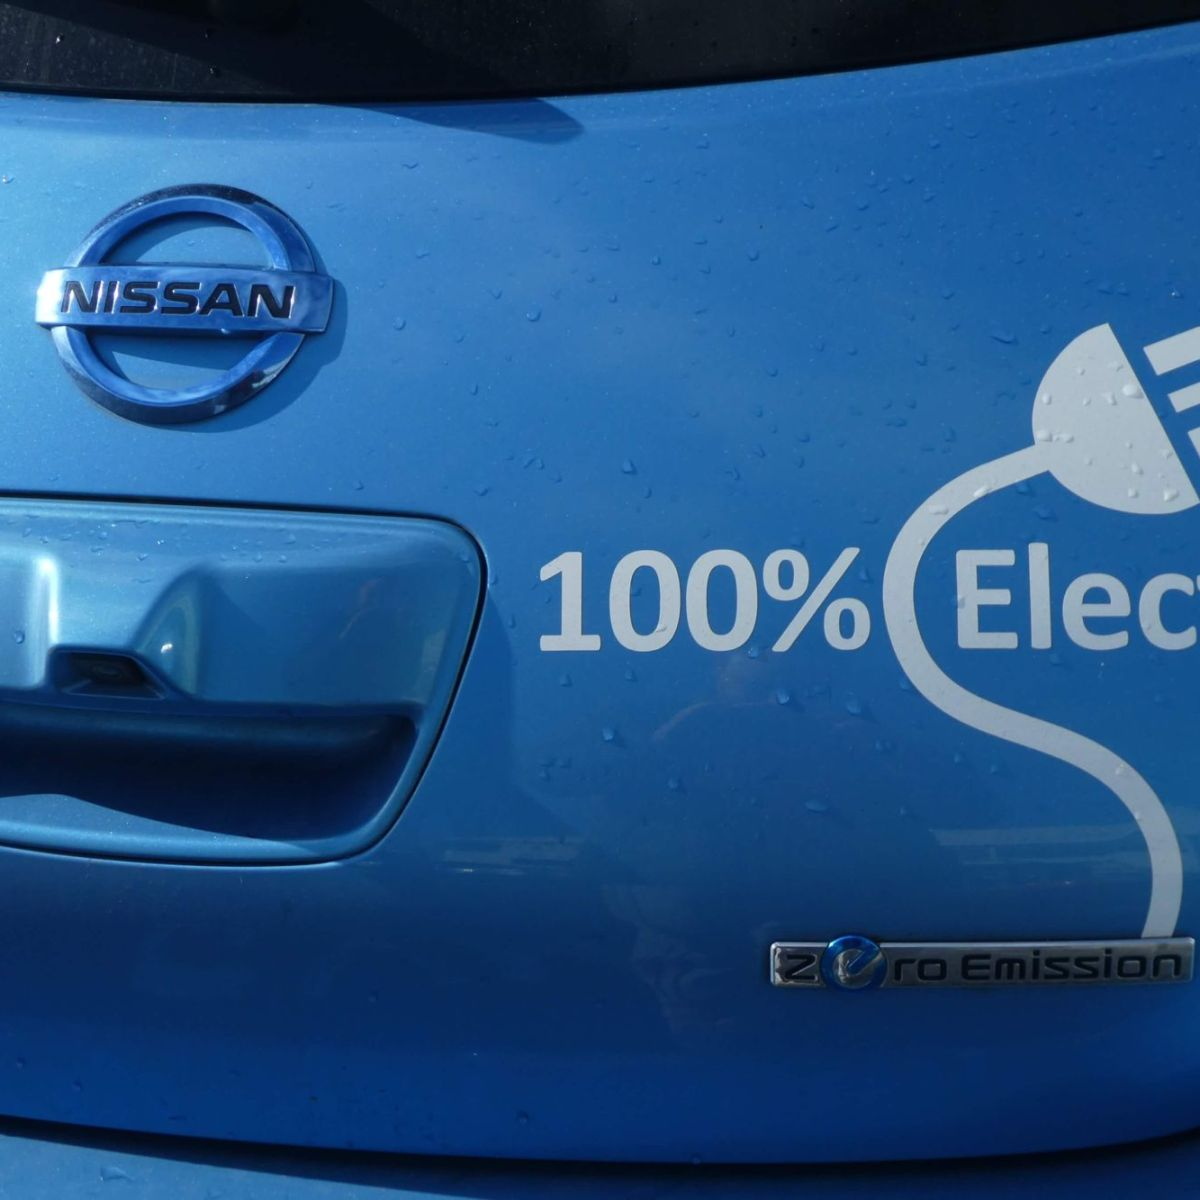 Nissan 100% electric car